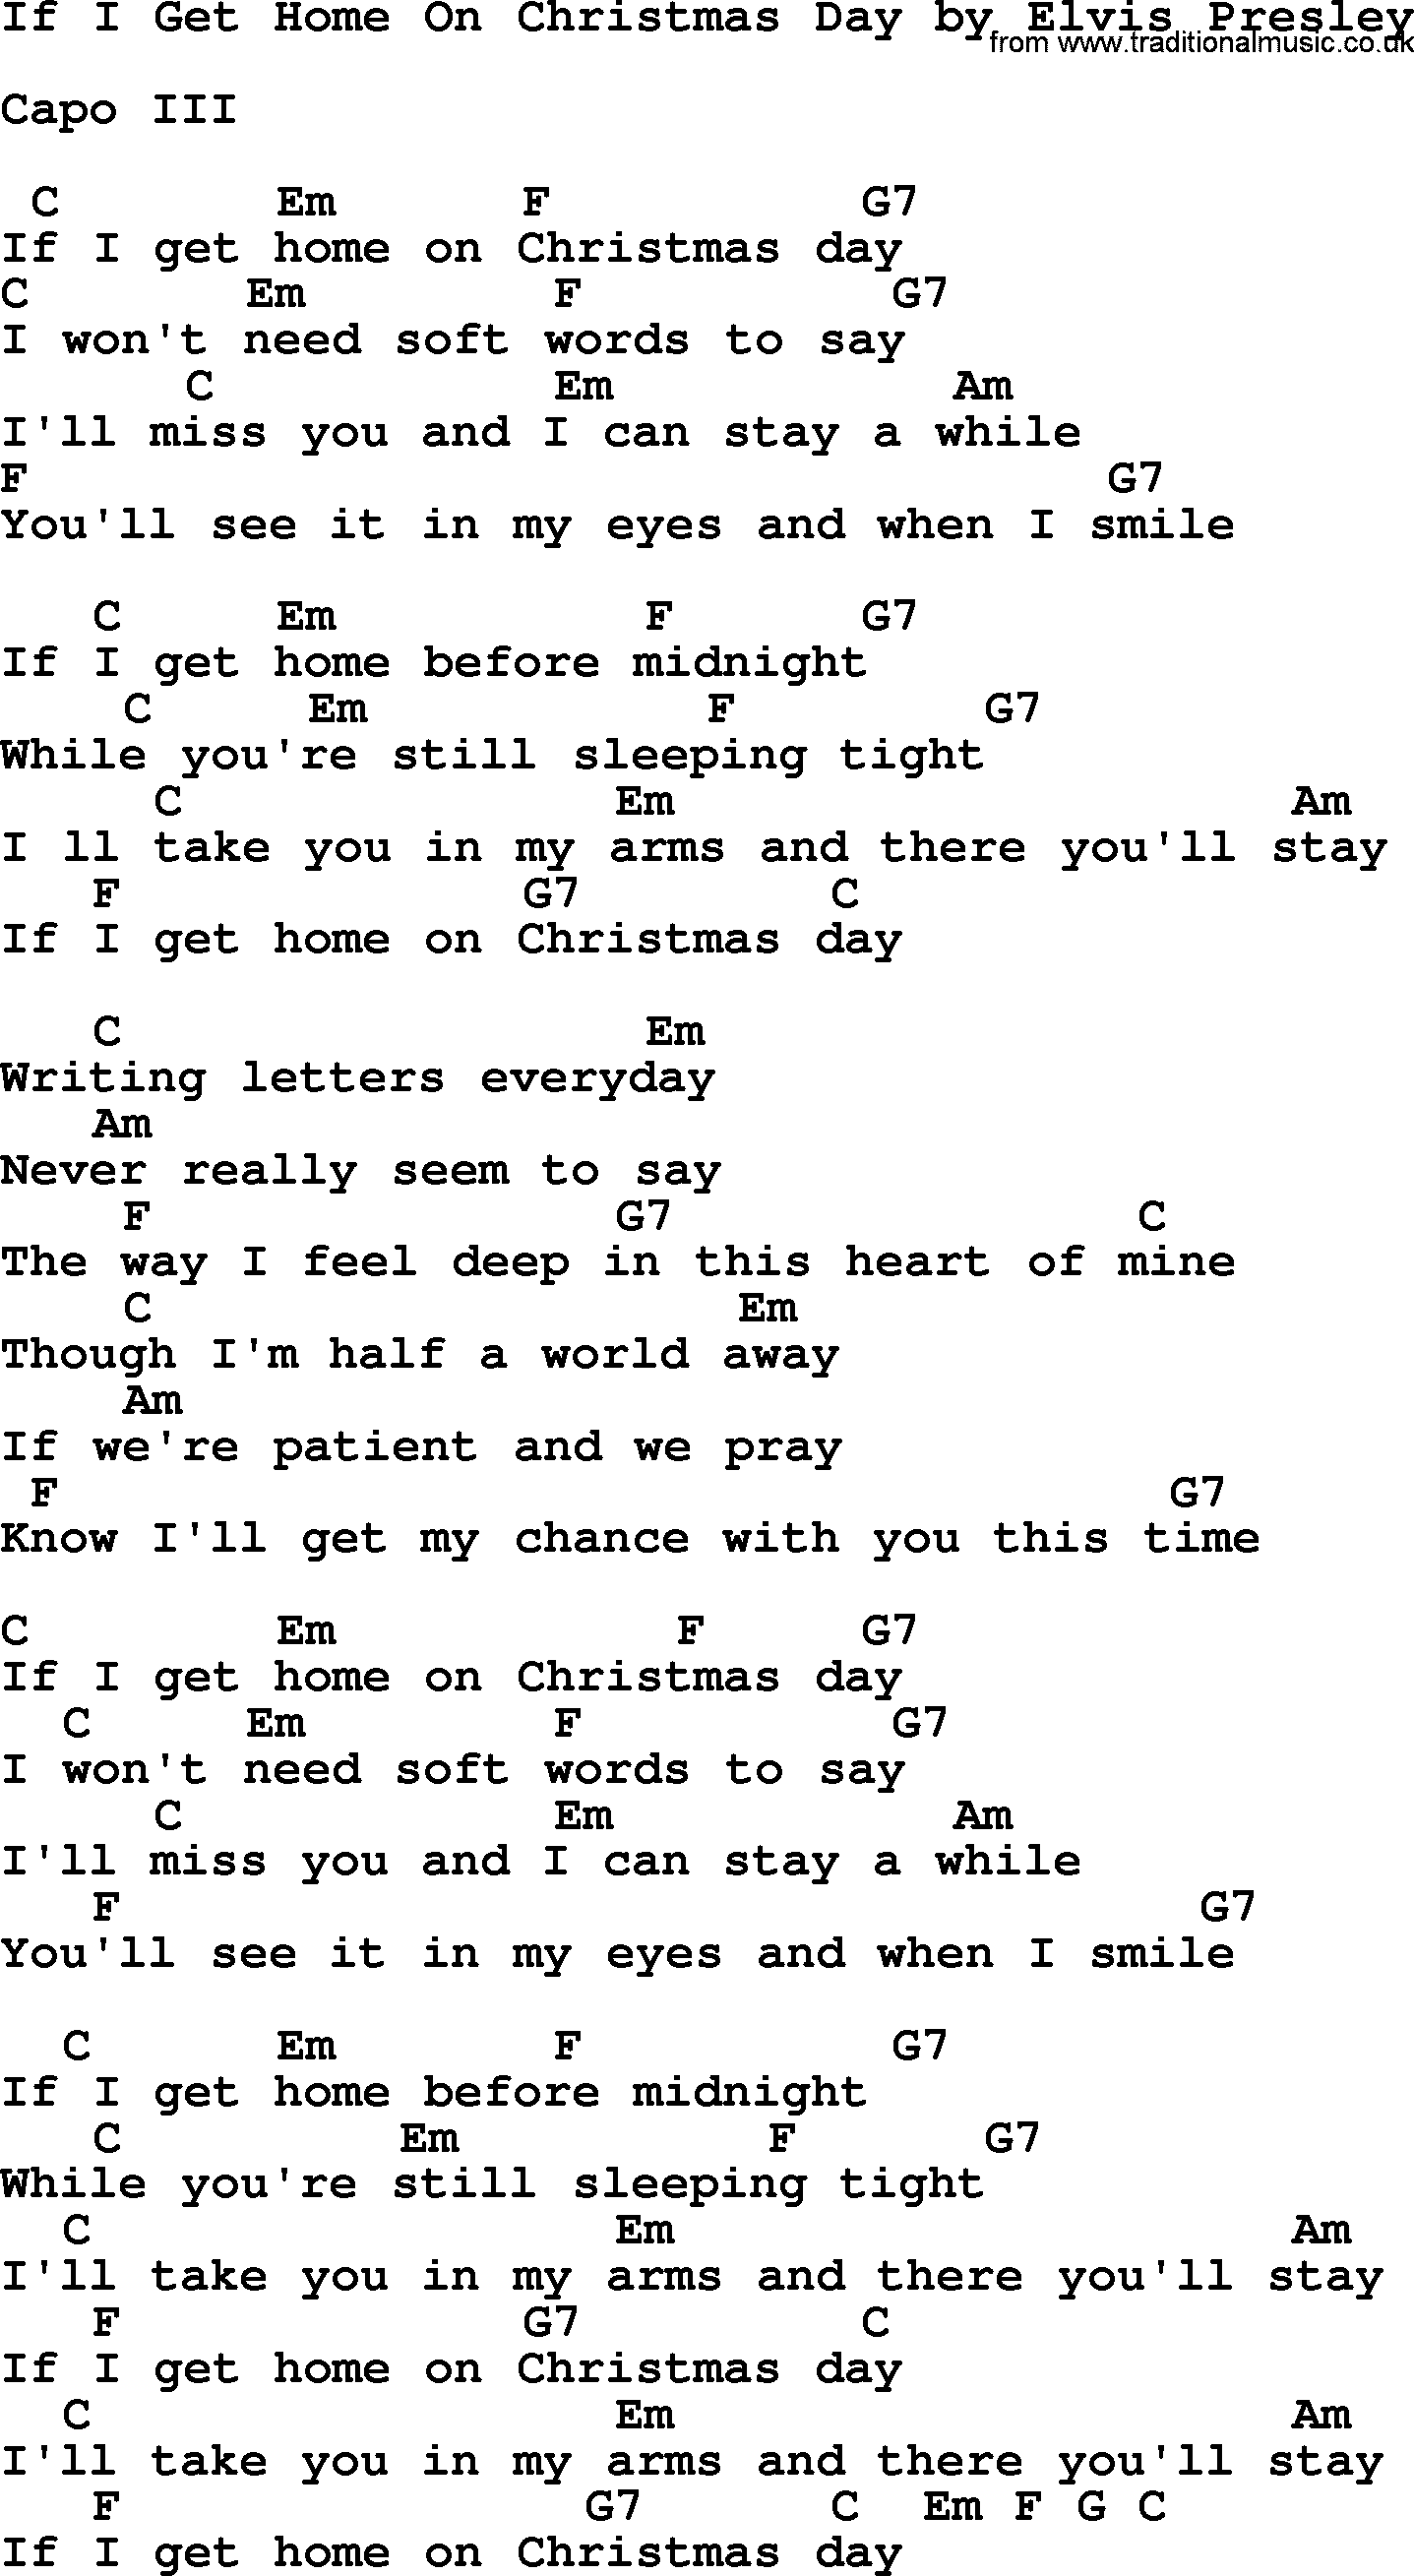 If I Get Home On Christmas Day, by Elvis Presley - lyrics and chords